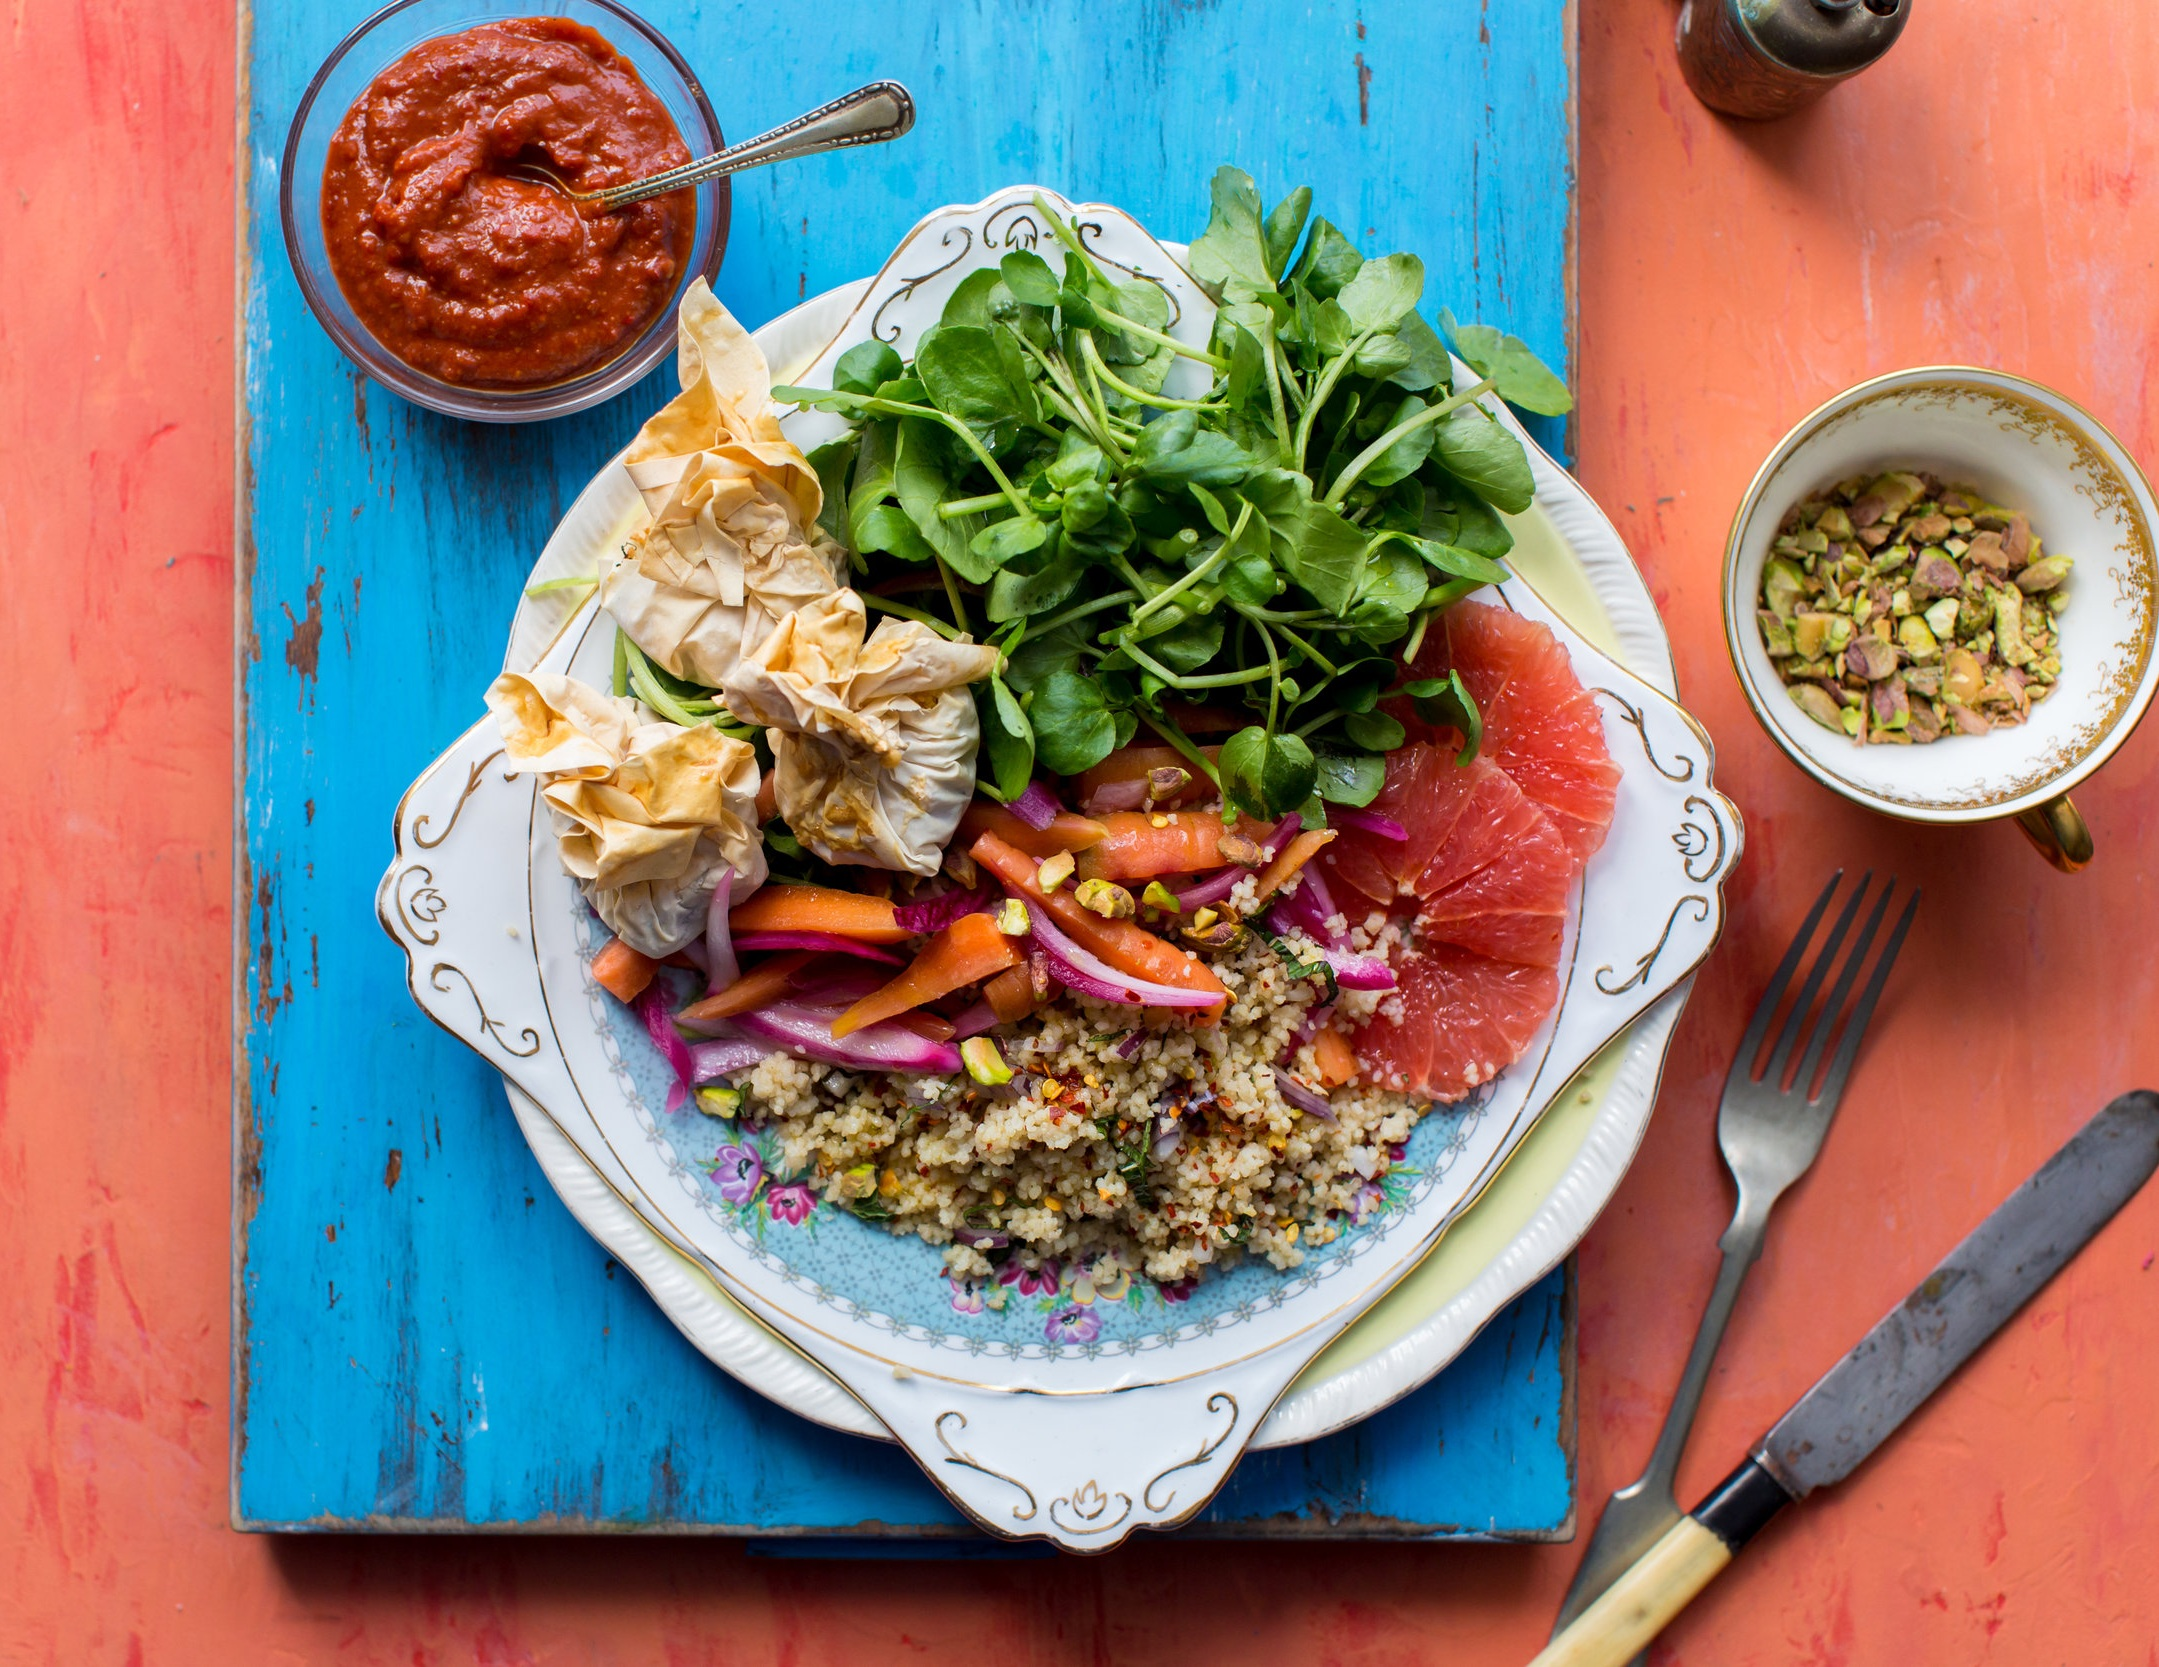 Moroccan+Couscous+Salad+with+Feta+Parcels%2C+Watercress+and+Harissa+Yoghurt+2.jpg